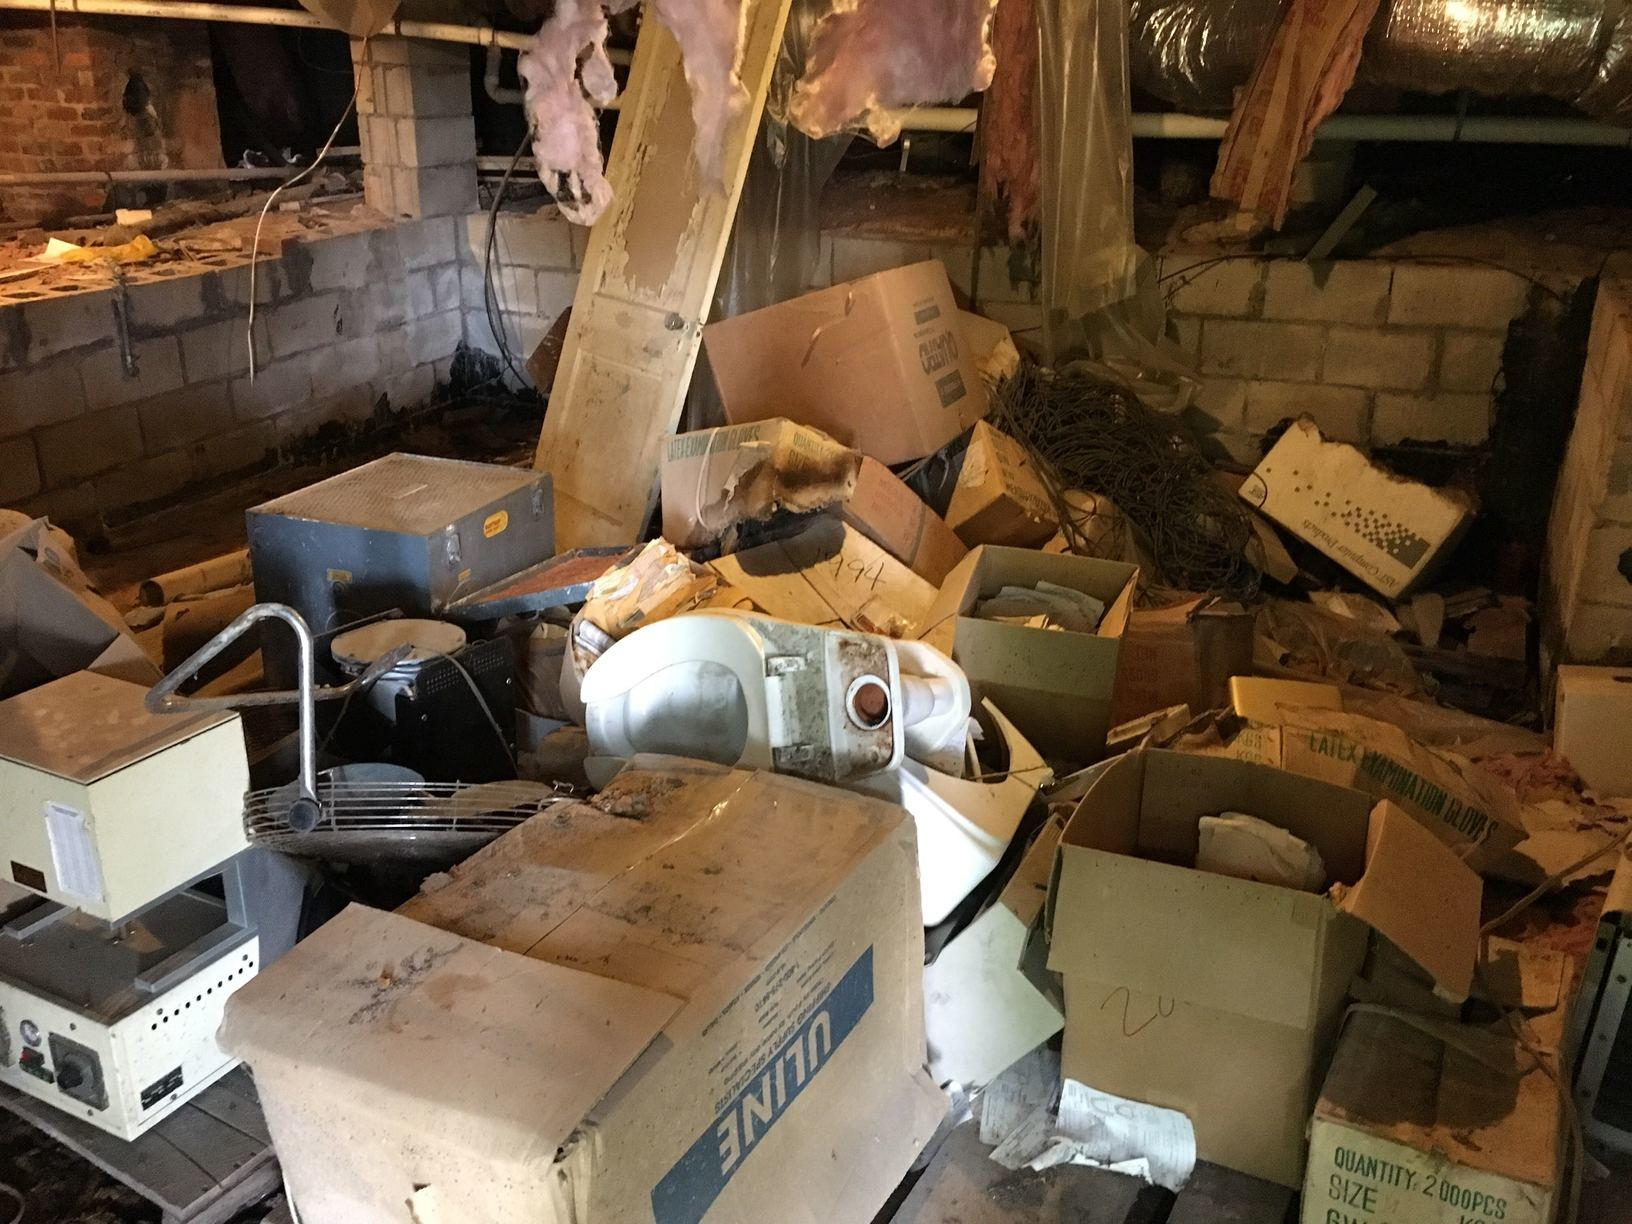 Crawl Space Cleanout in Charlotte, NC - Before Photo